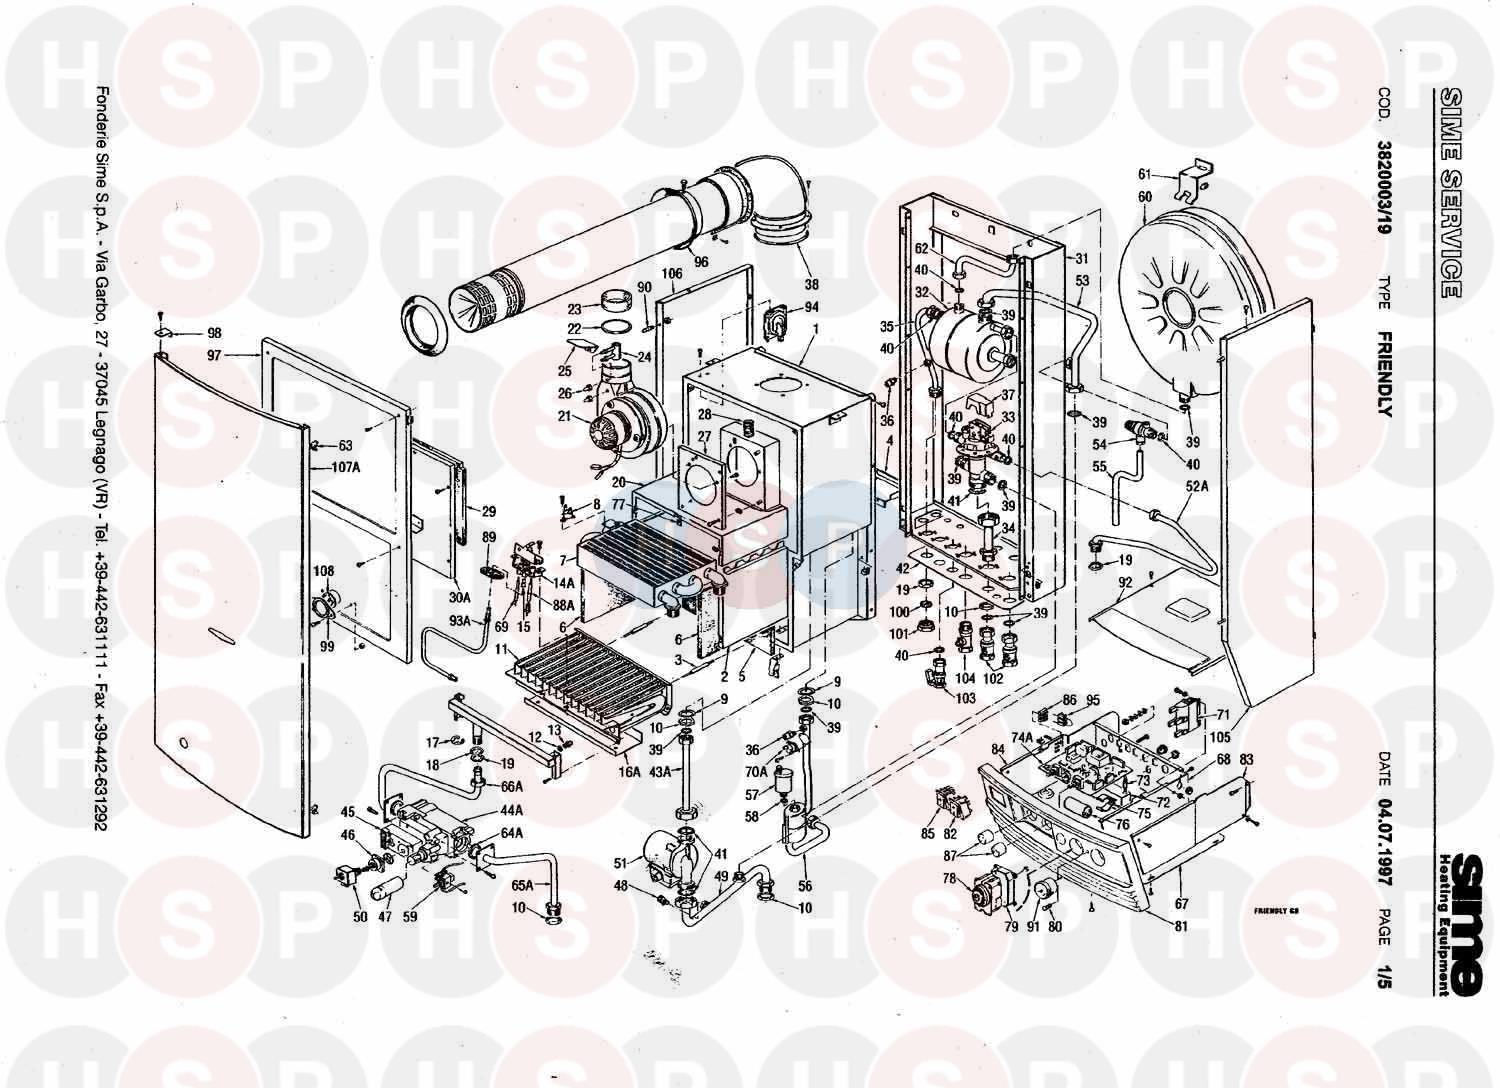 Sime super 80 exploded view diagram heating spare parts click the diagram to open it on a new page swarovskicordoba Choice Image